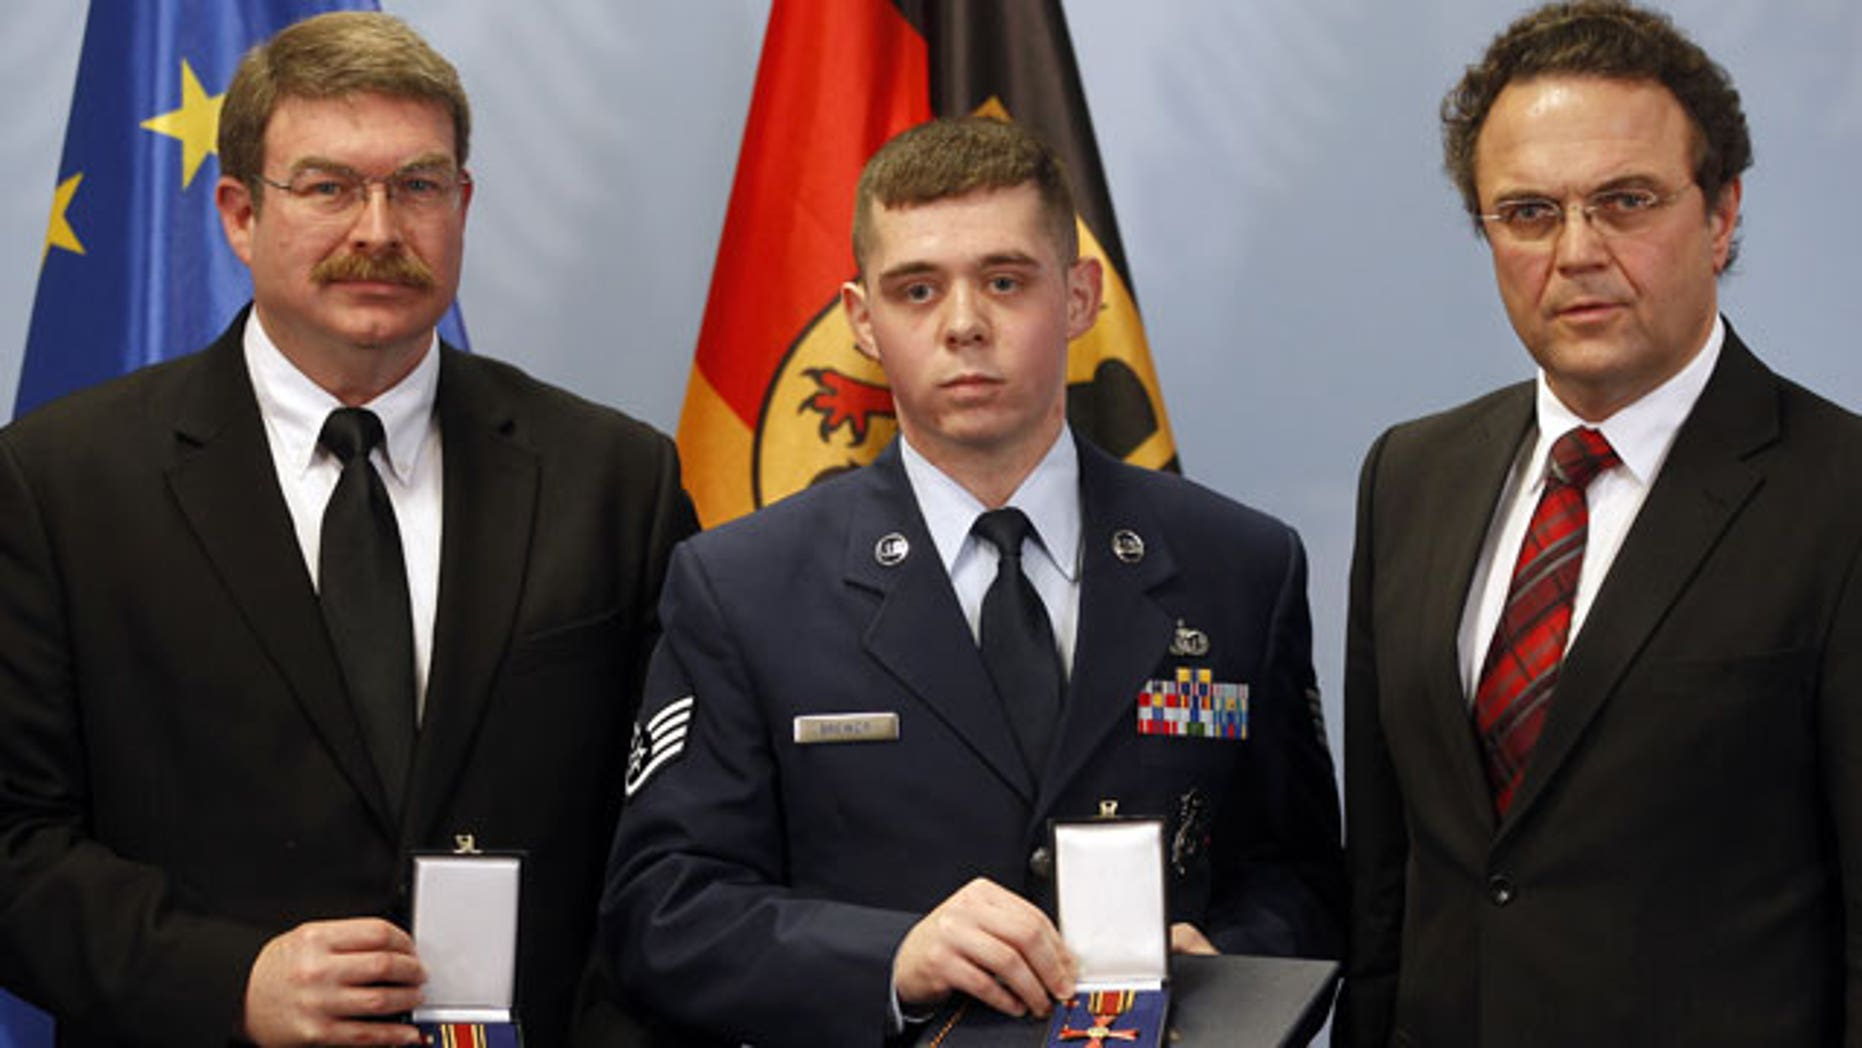 January 16, 2012: Frankfurt airport employee Lamar Joseph Connor, left, from Altha, Florida, and US Staff Sergeant Trevor Donald Brewer, center, from Gray, Tennessee are awarded with The Cross of Merit of the Federal Republic of Germany by German Interior Minister Hans-Peter Friedrich , right, in Berlin, Germany.